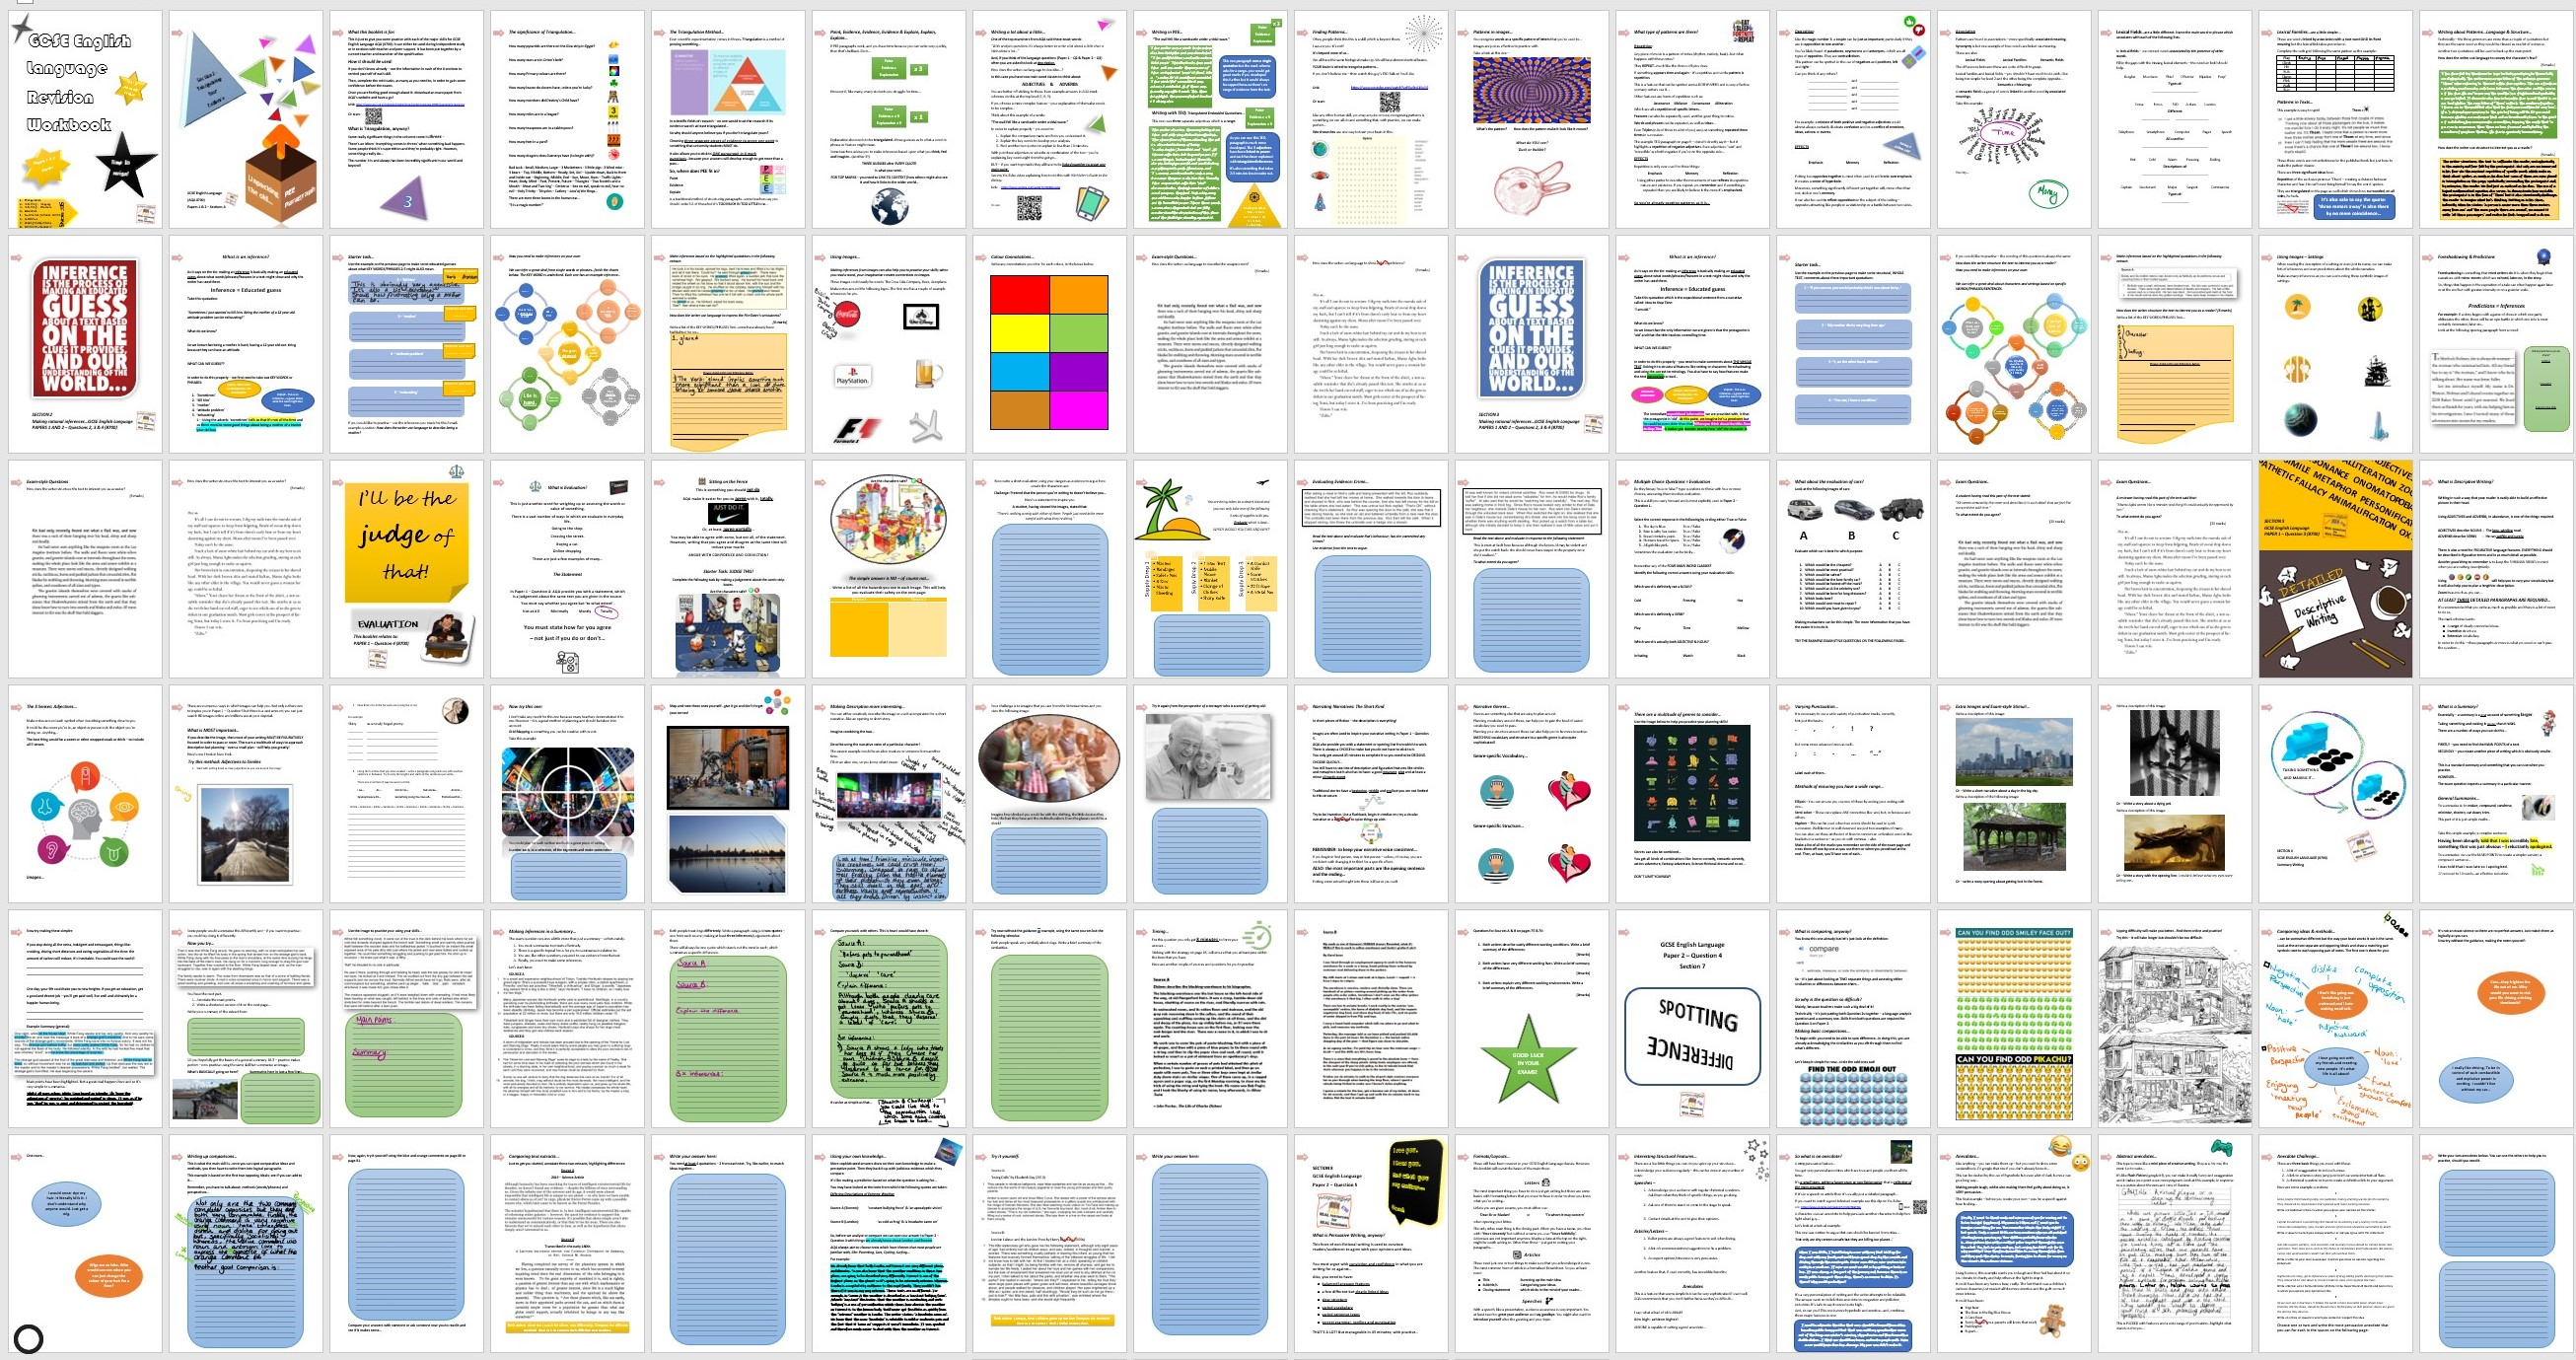 AQA 8700 GCSE English Language - Revision Work/Guidebooks - One for each AO